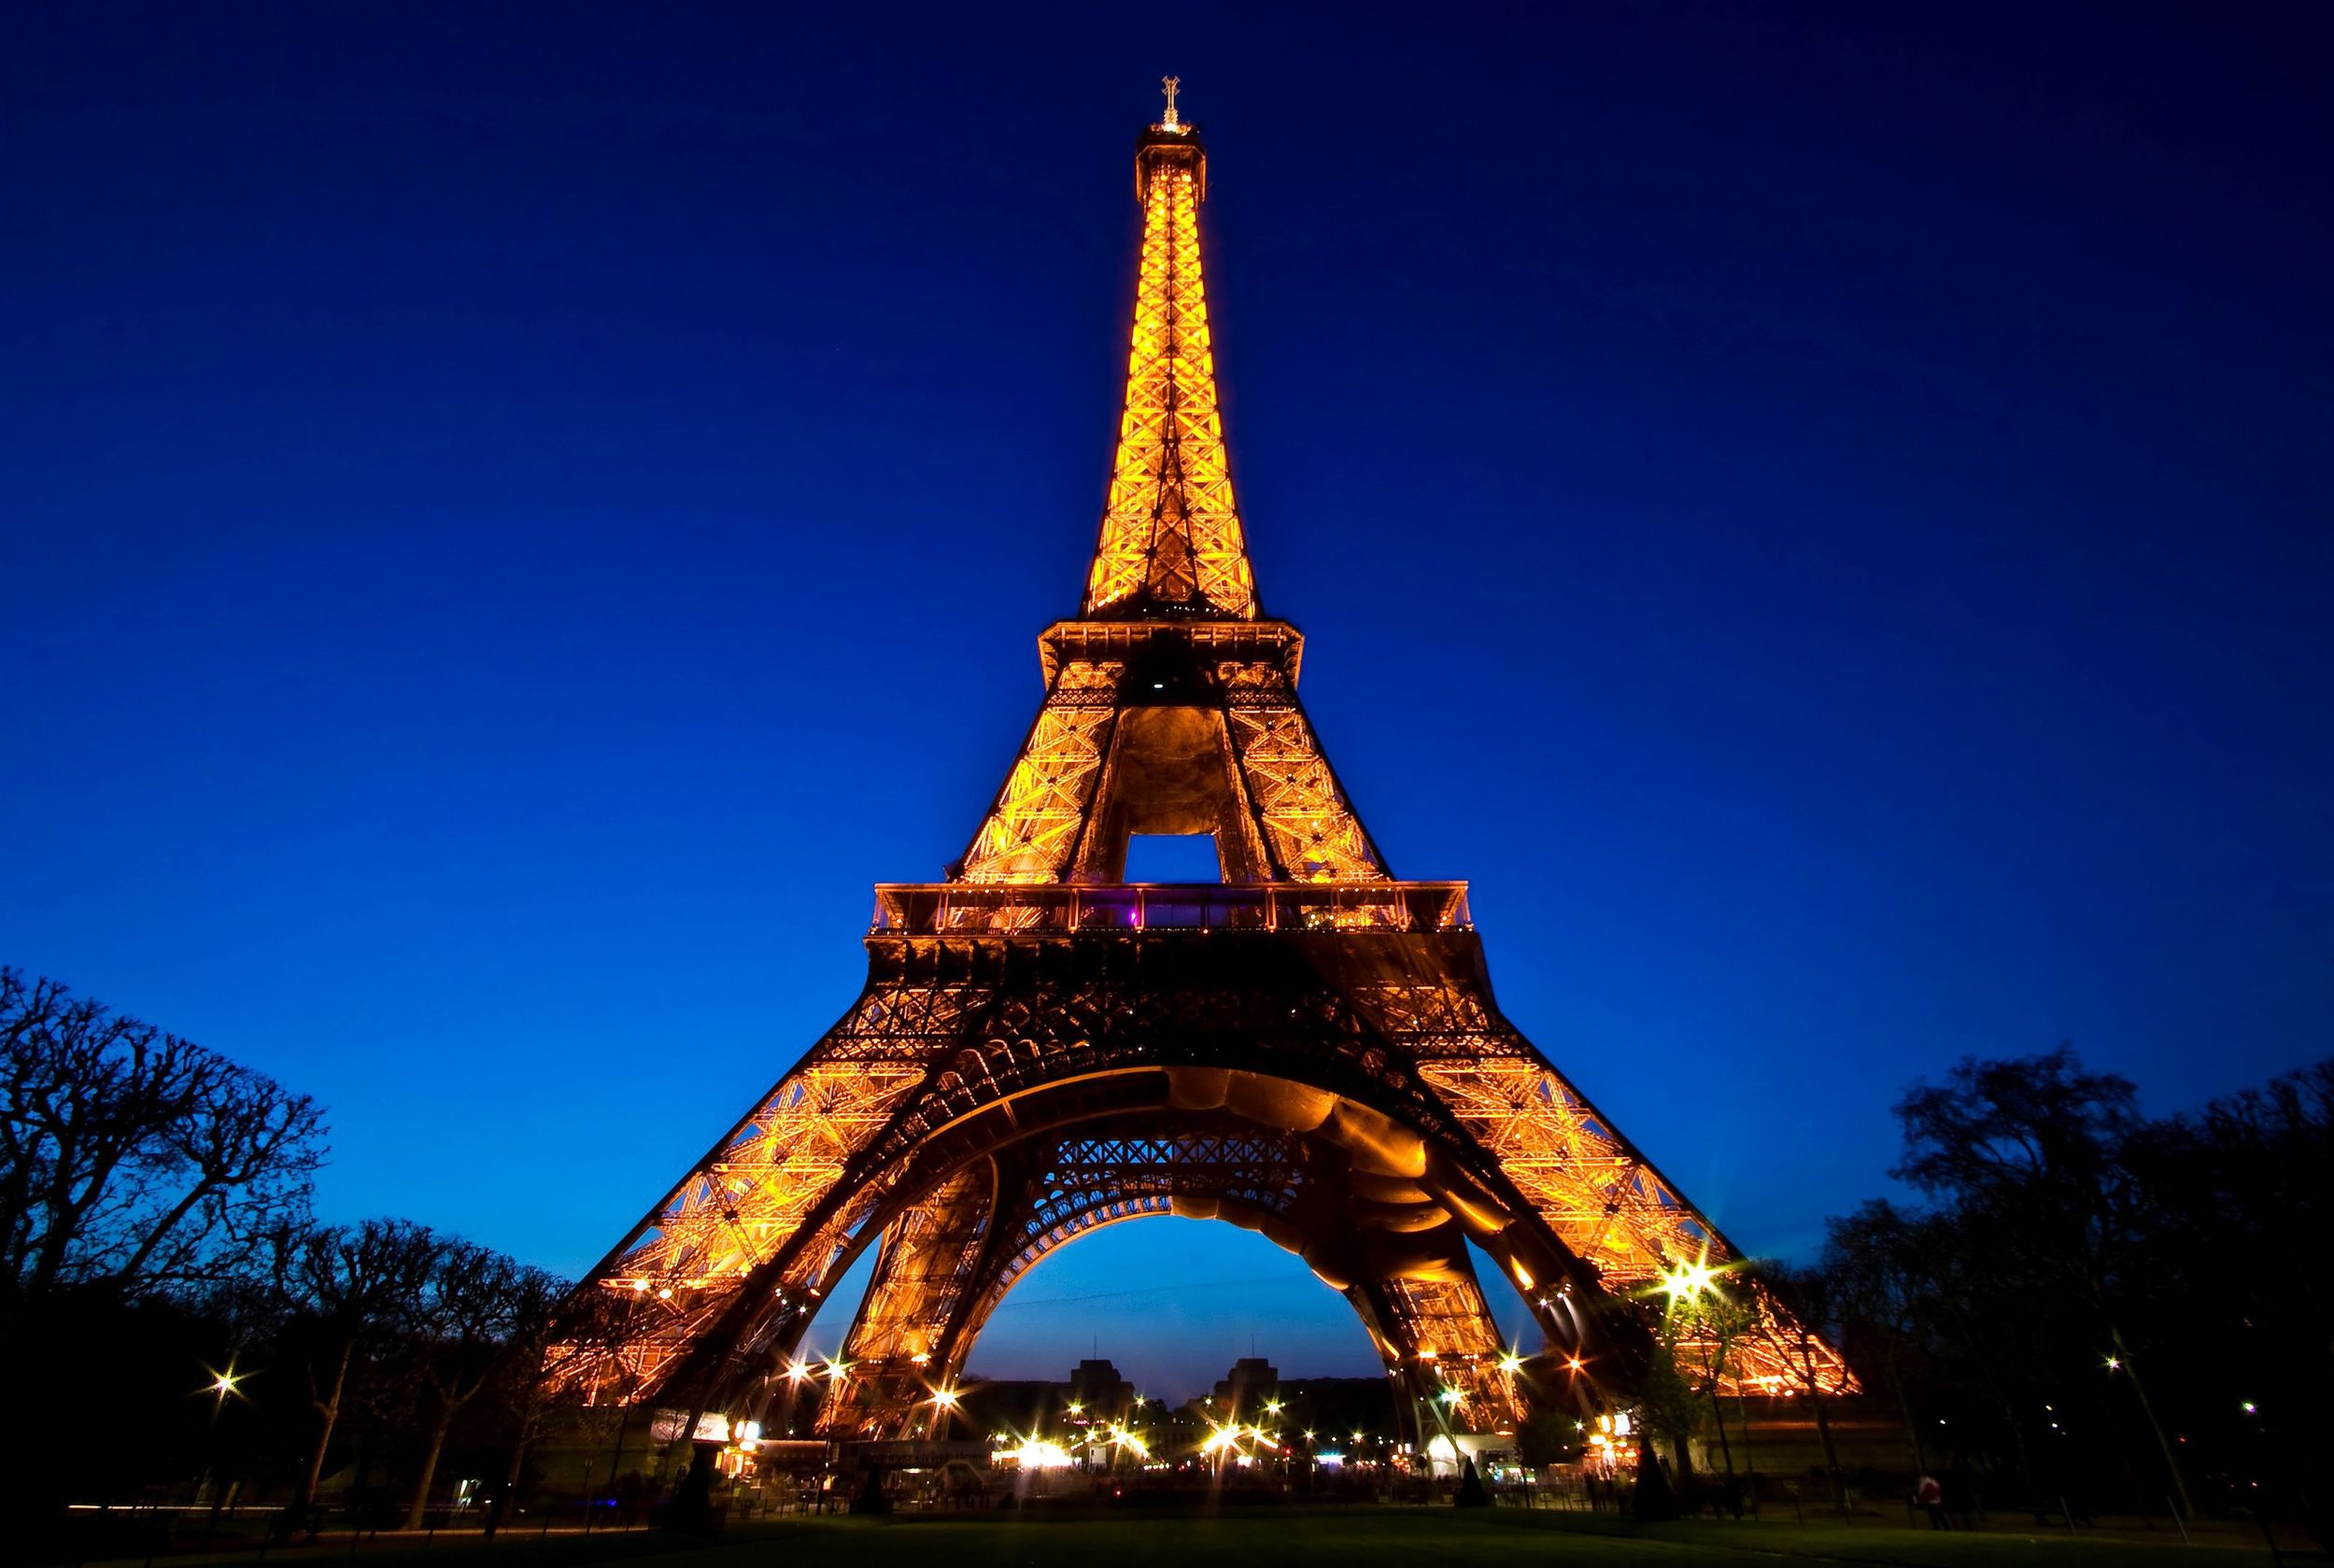 _eiffel_tower_against_the_night_sky_058012_